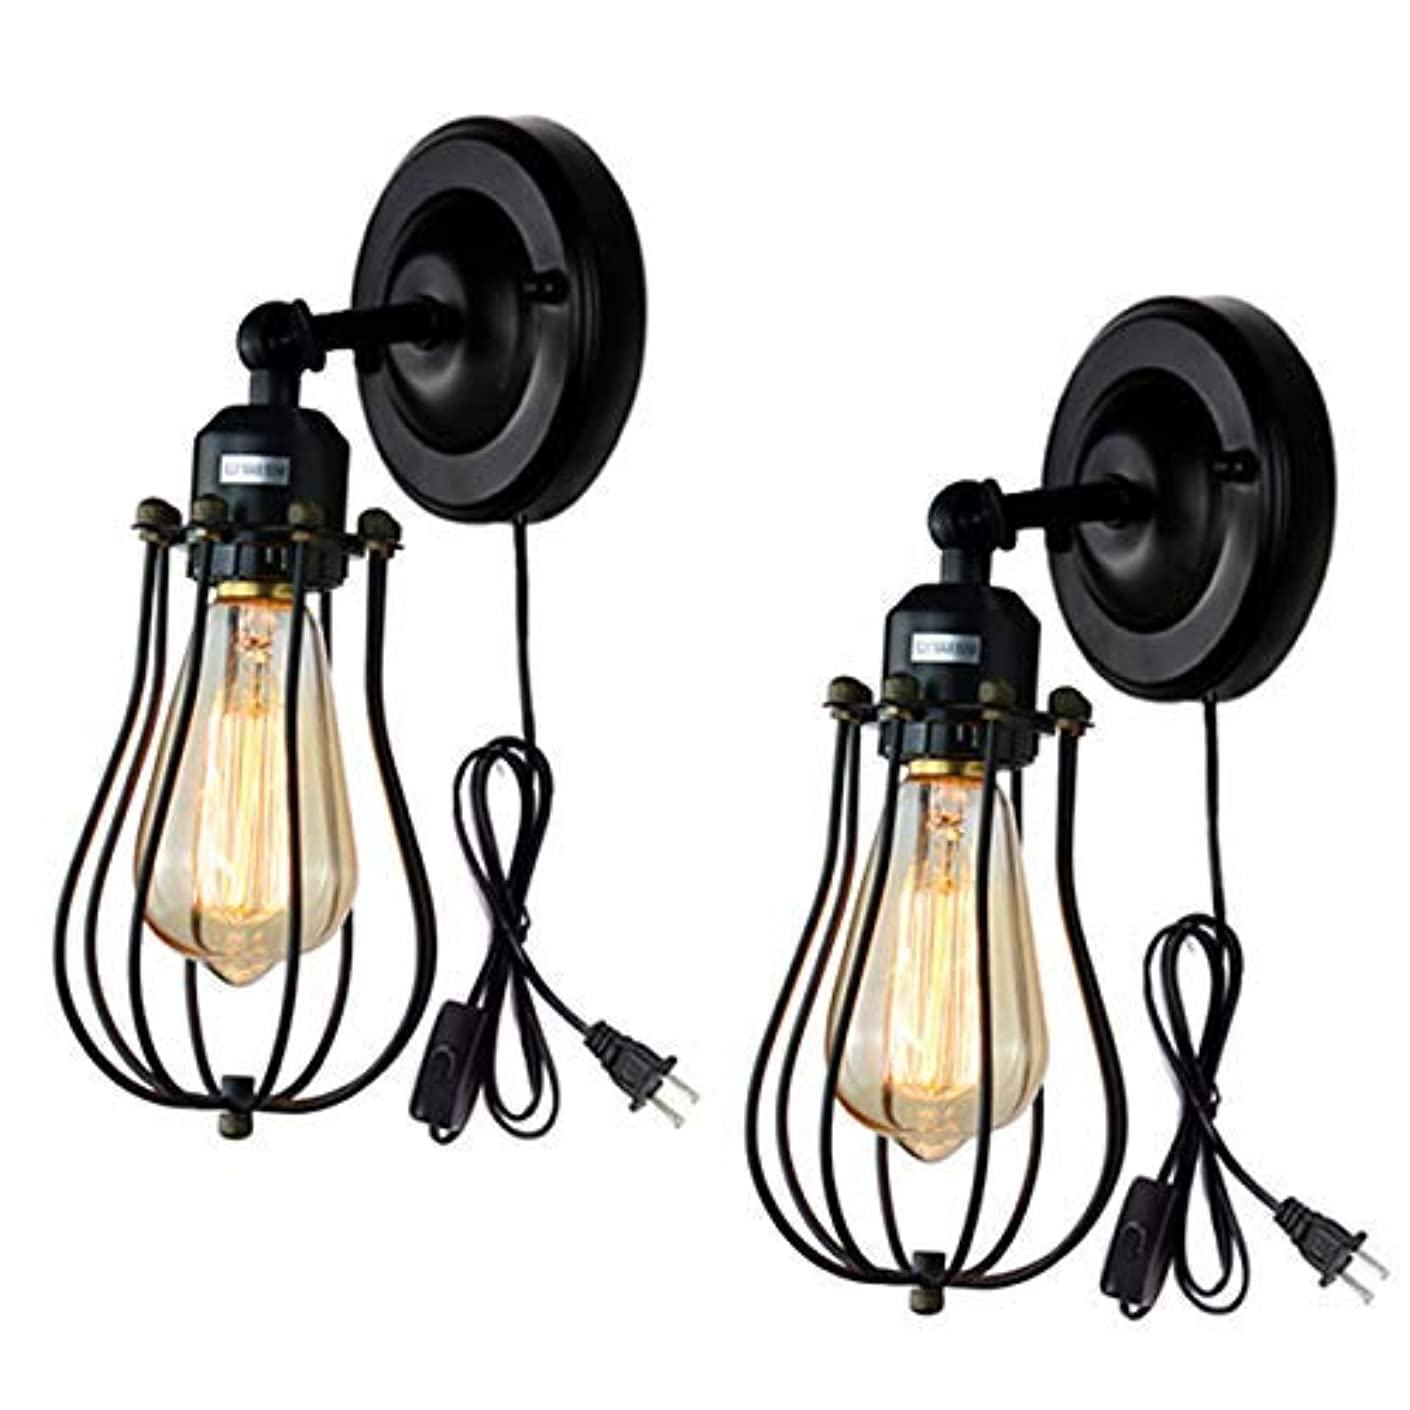 Wire Cage Wall Sconce 2 Pack Industrial Wall Lamp Plug-in Cord Wall Light Edison E26 Base Black Light Fixture for Bedroom Garage Porch Mirror